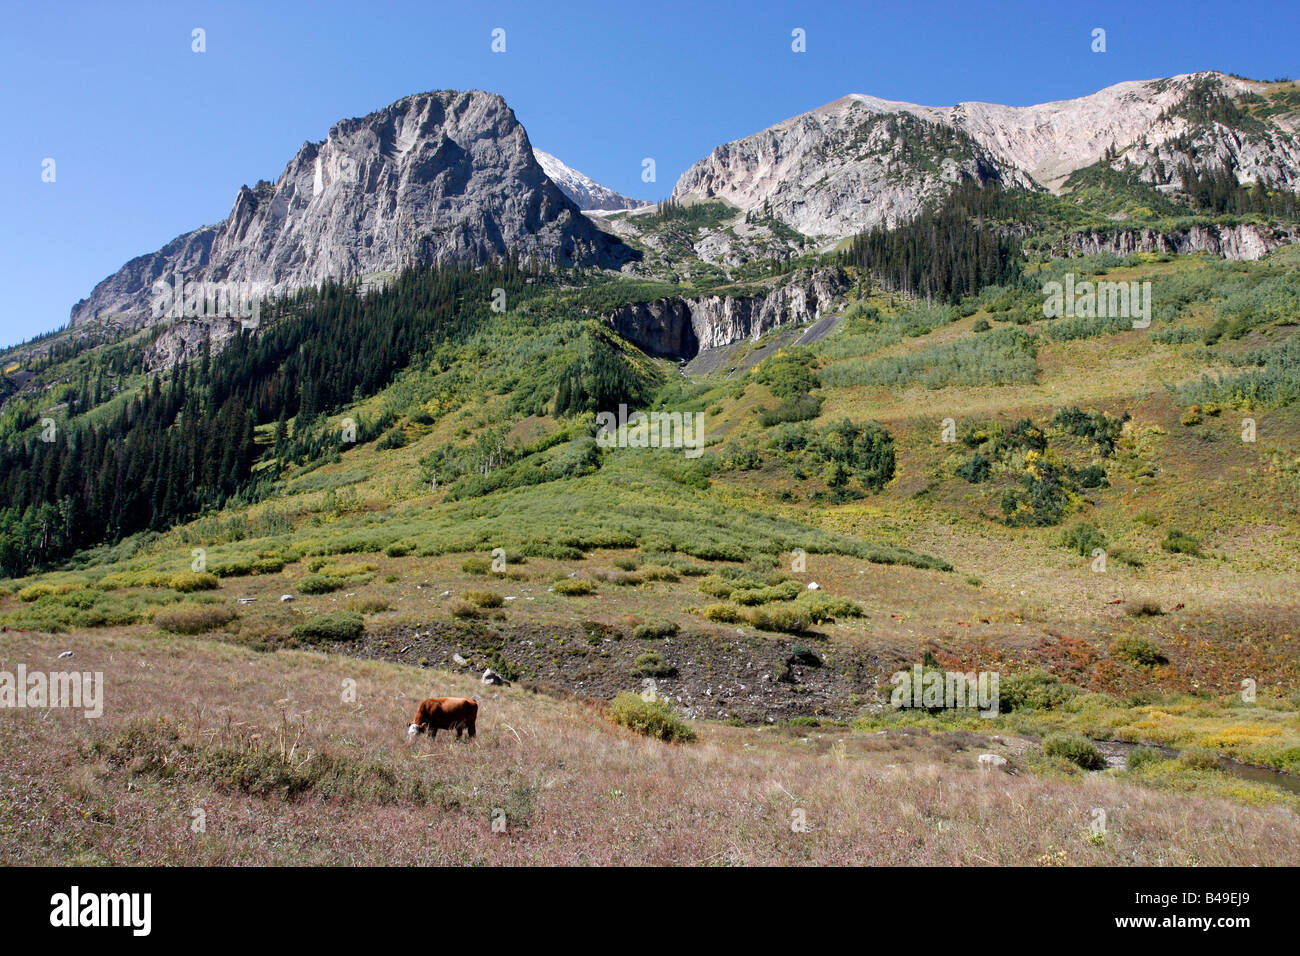 Cattle grazing in the Paradise Divide,Colorado. - Stock Image